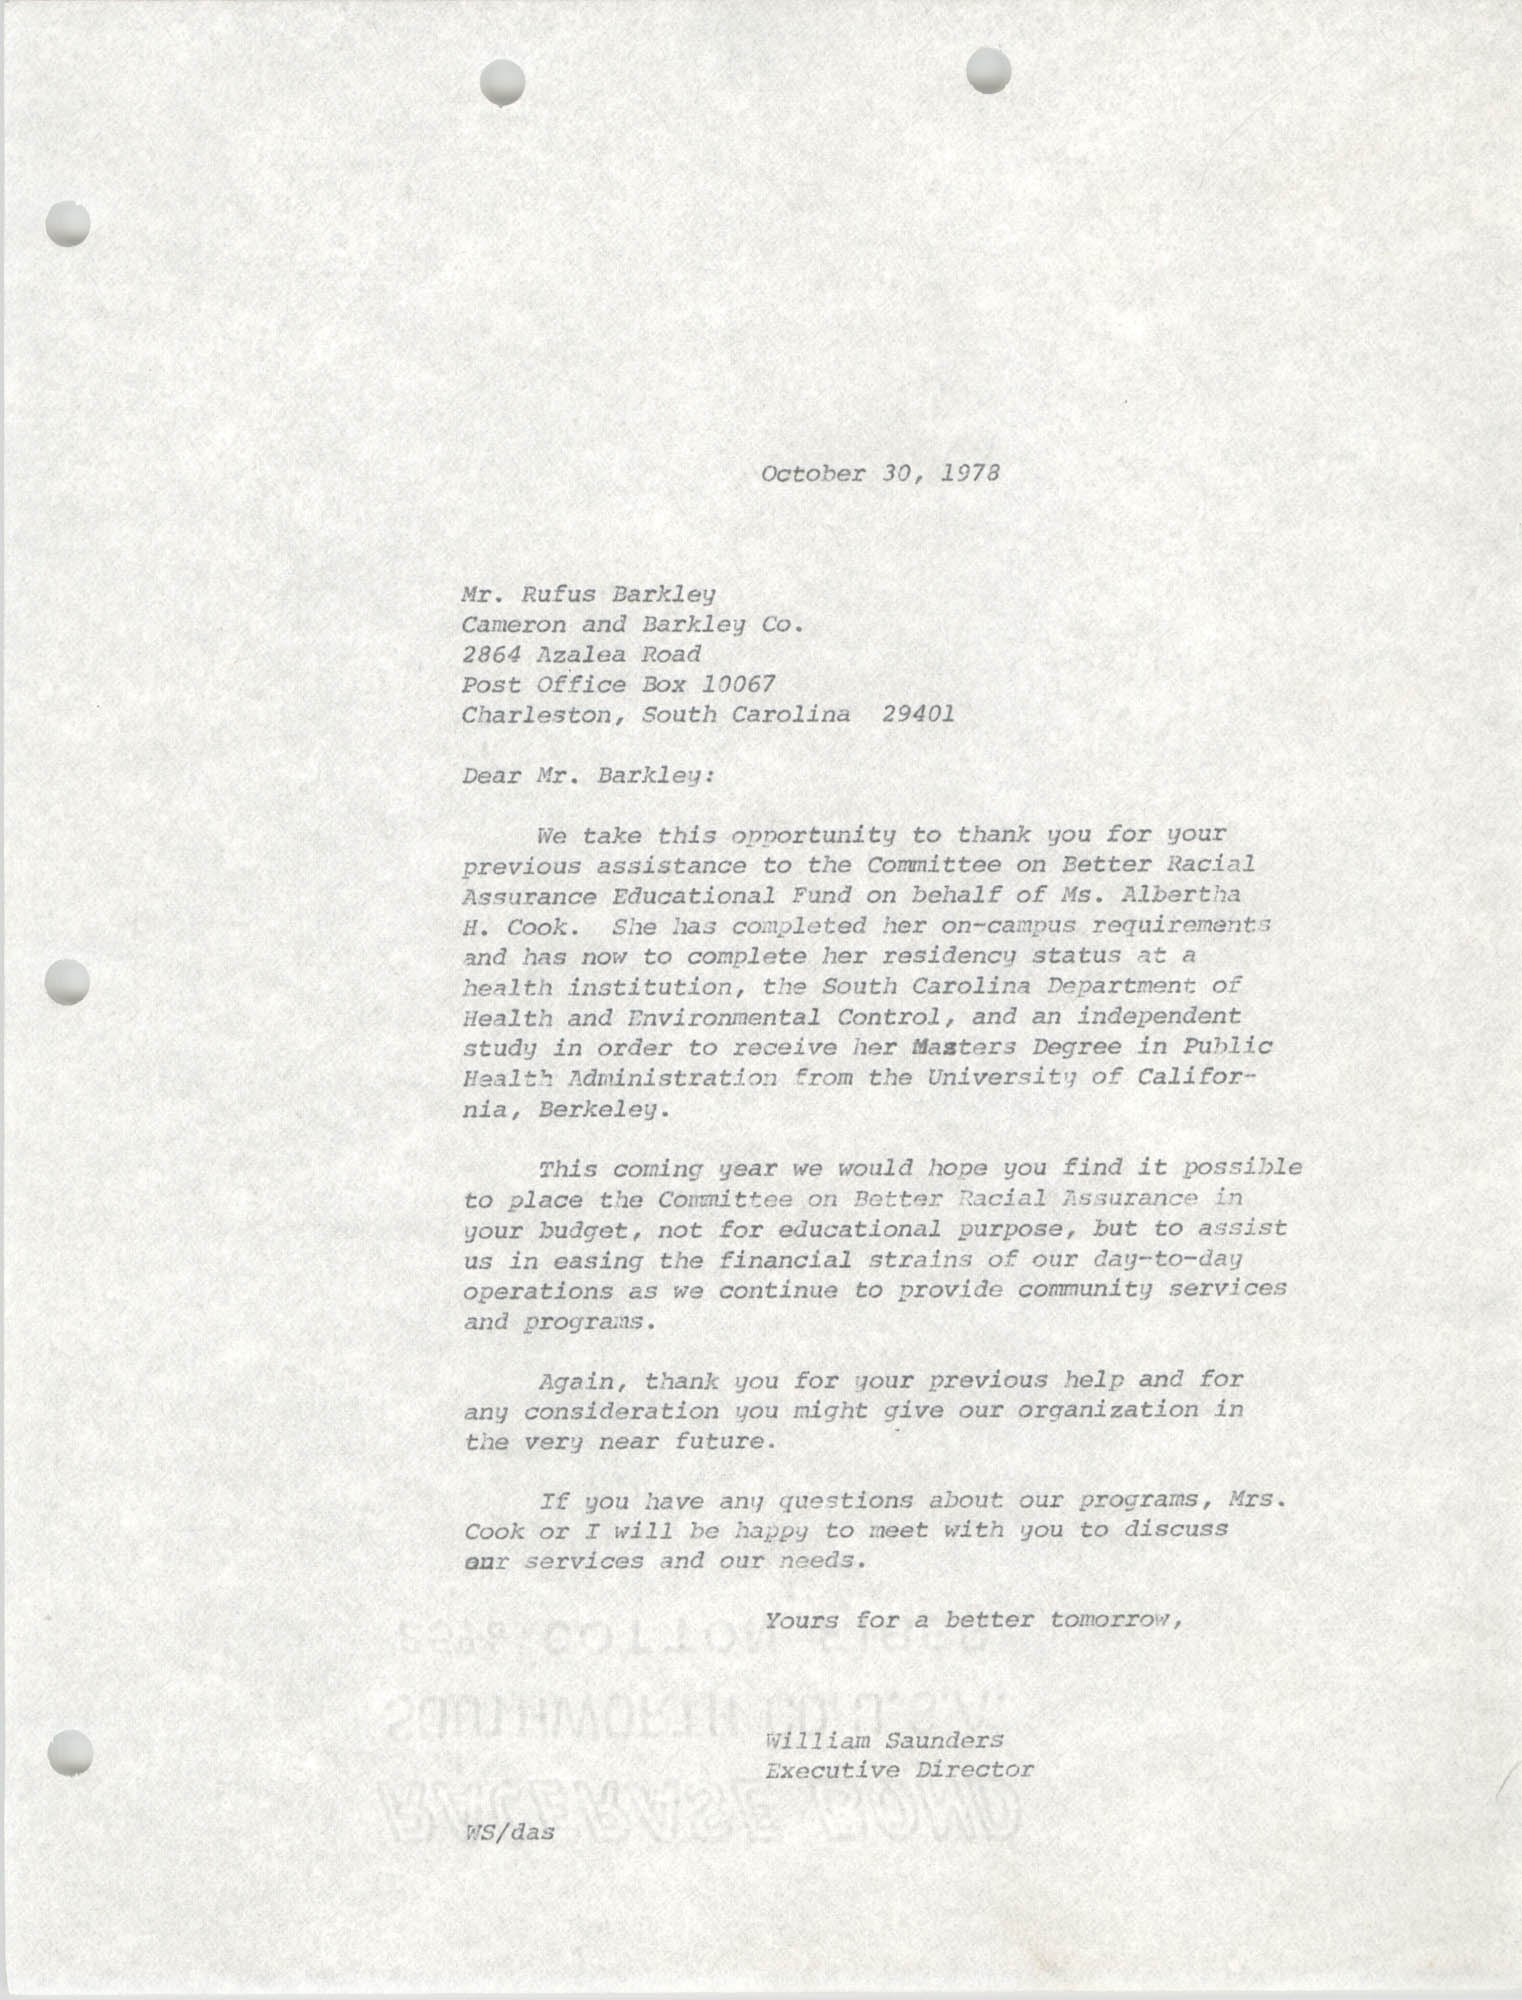 Letter from William Saunders to Rufus Barkley, October 30, 1978